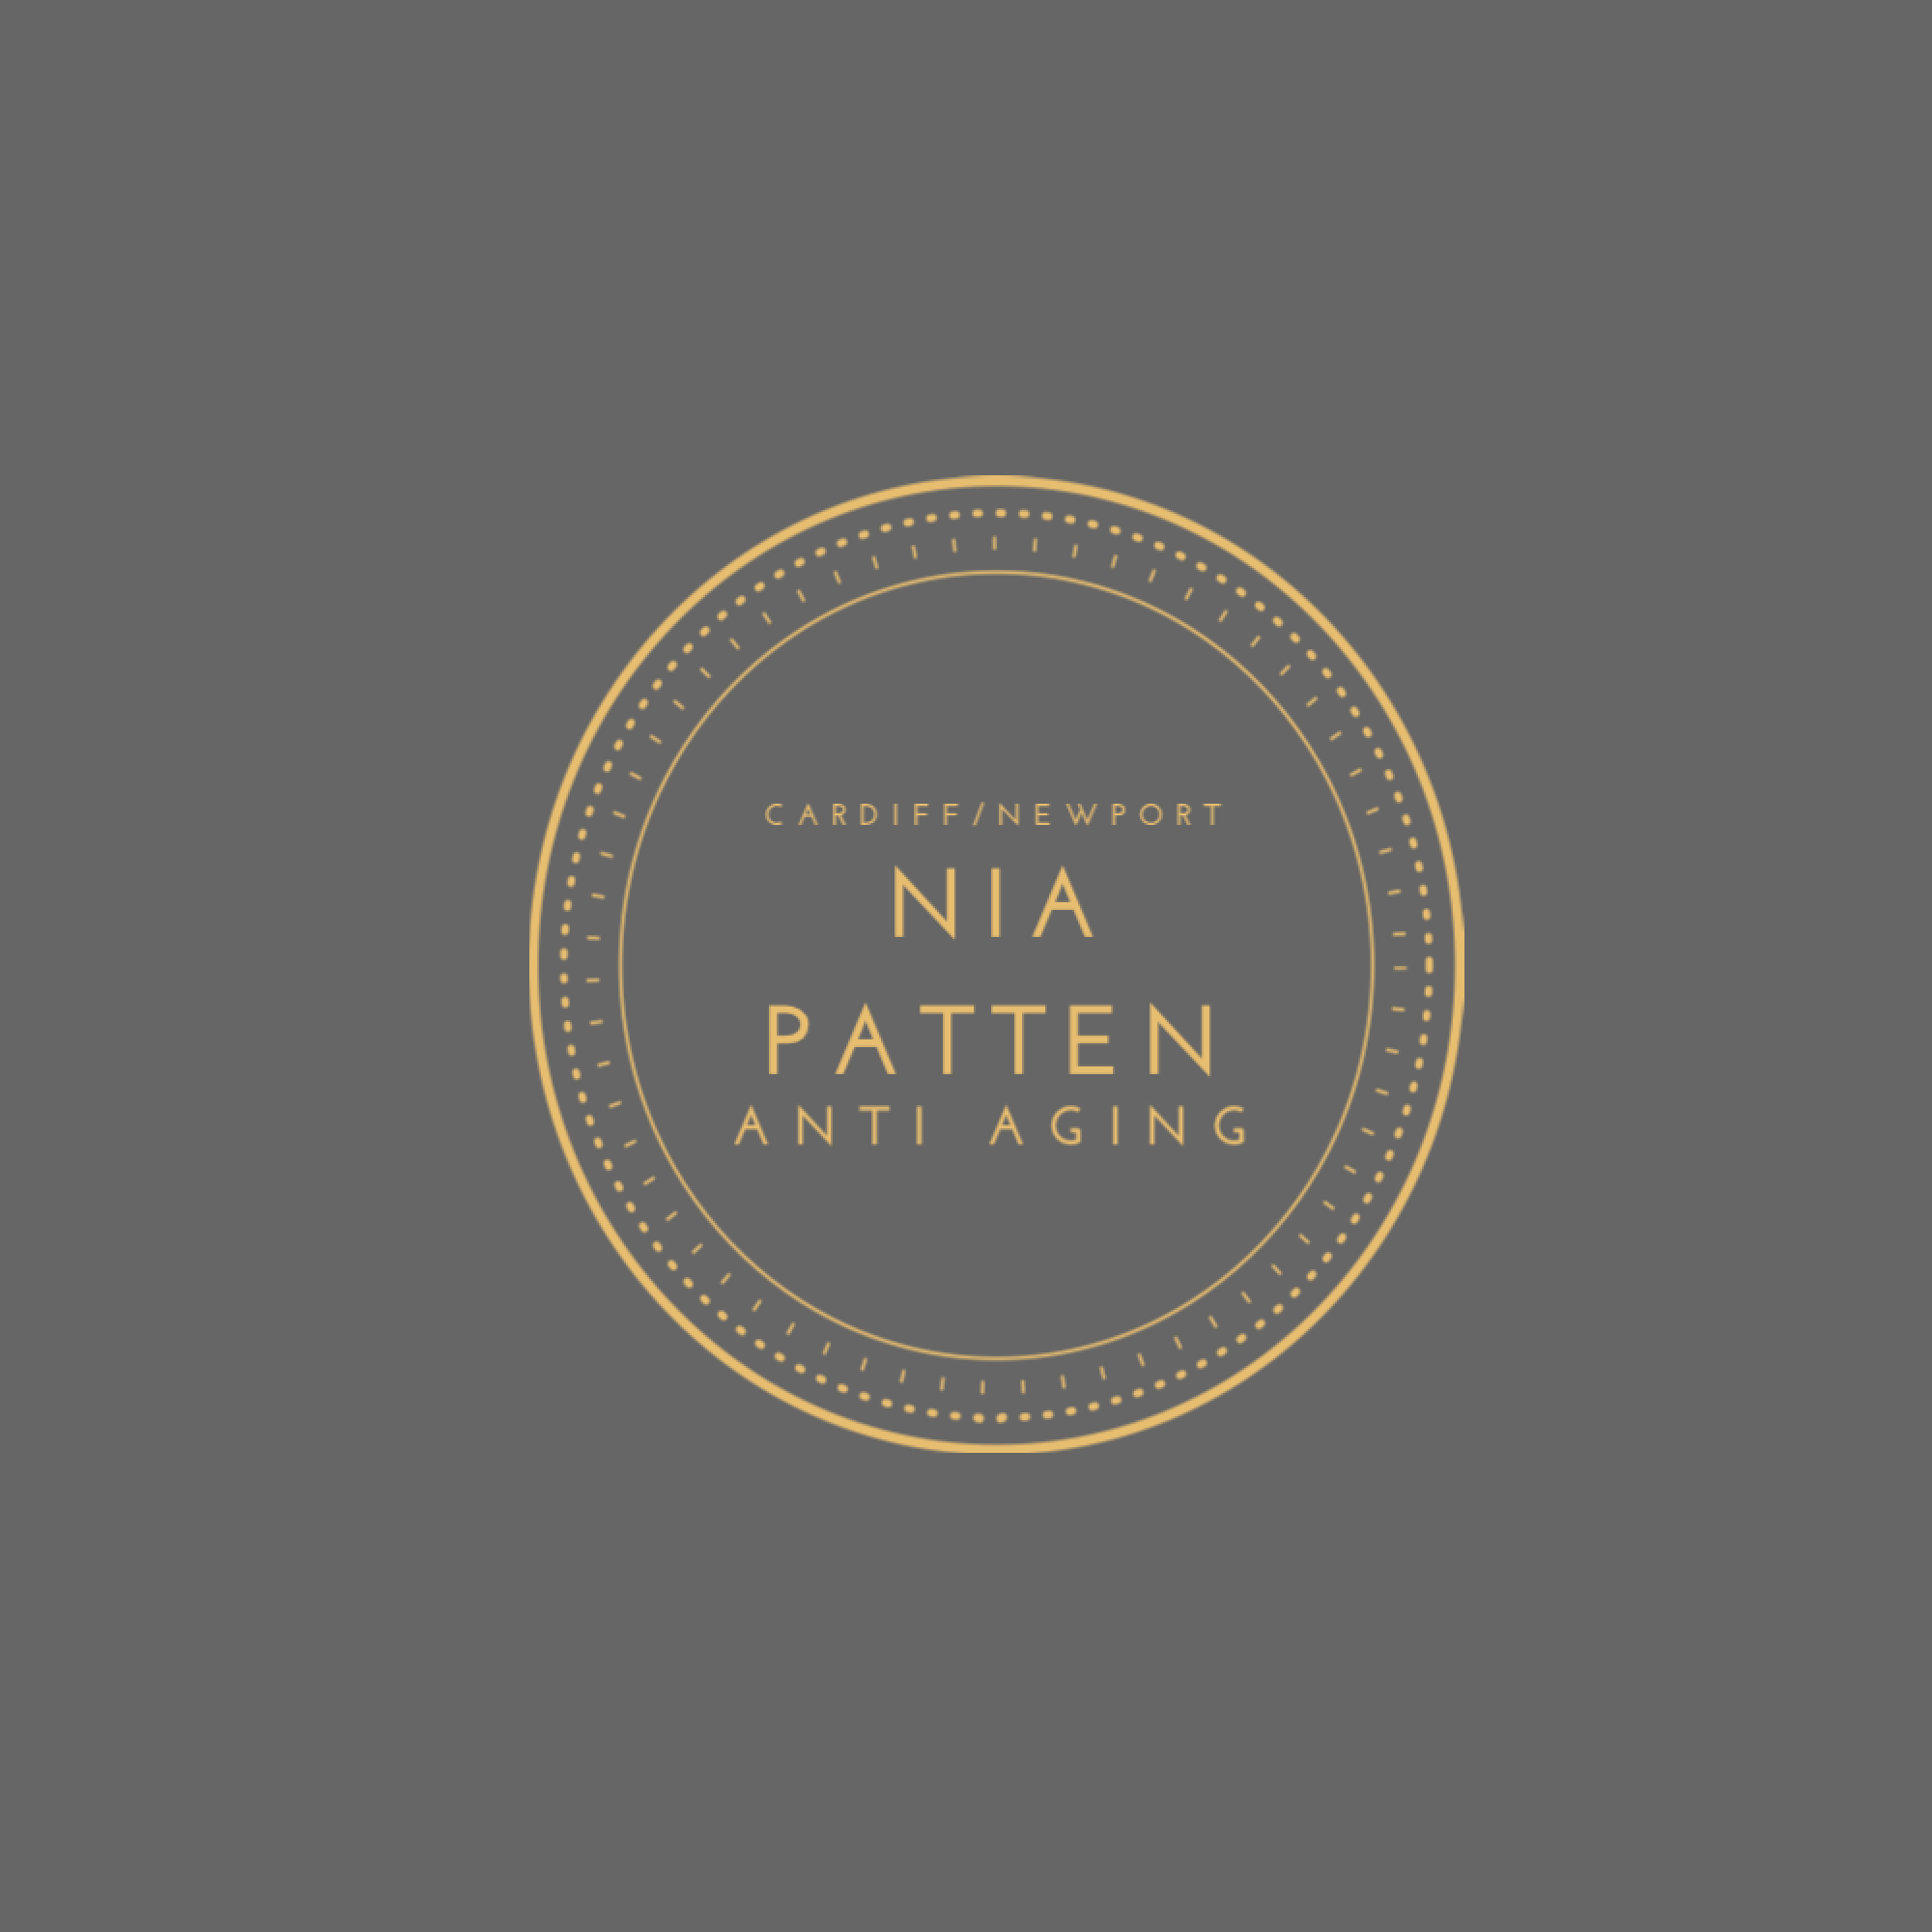 Nia Patten- Anti Aging Injections Cardiff